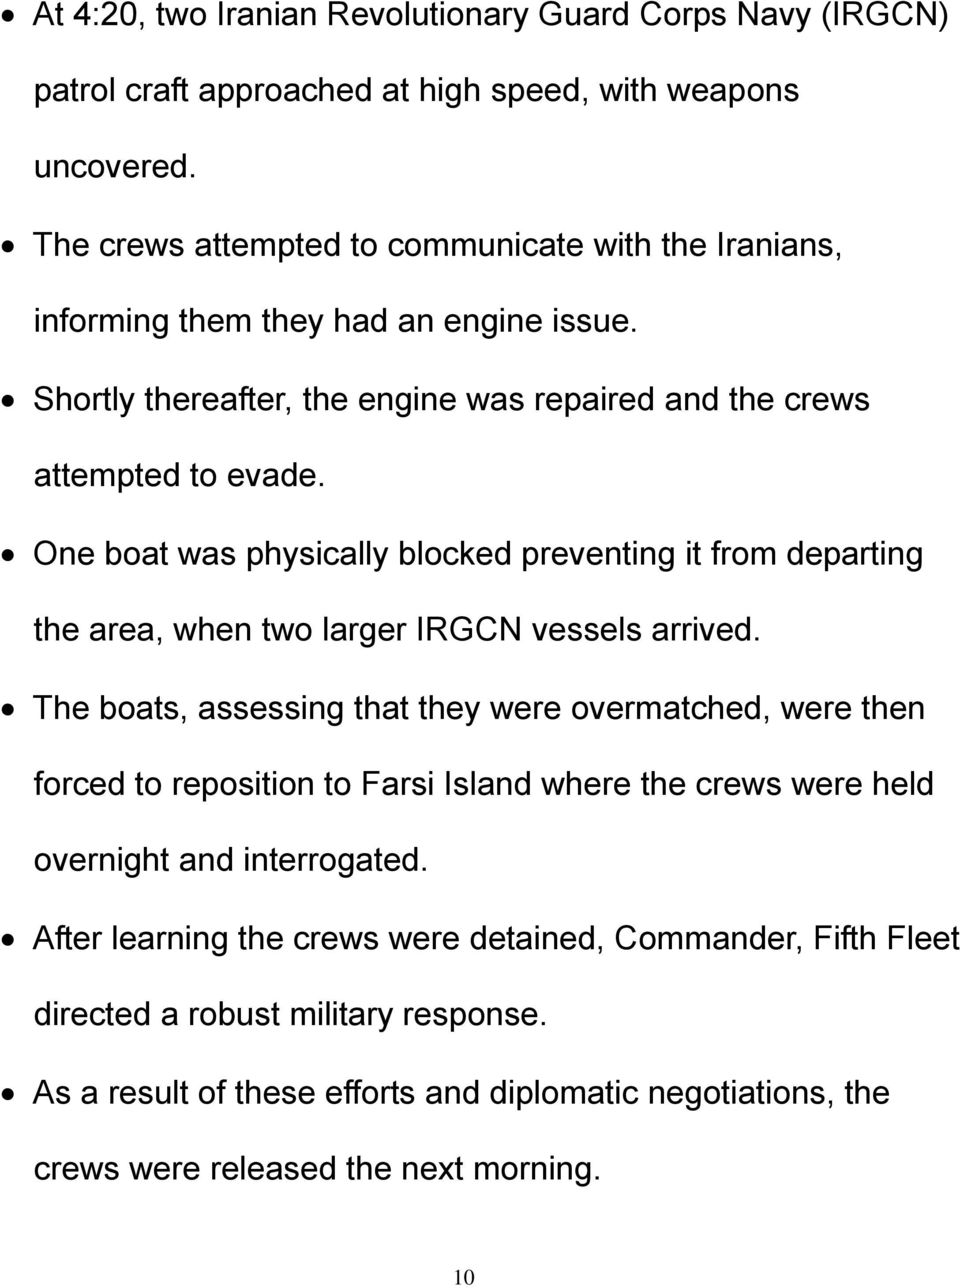 One boat was physically blocked preventing it from departing the area, when two larger IRGCN vessels arrived.